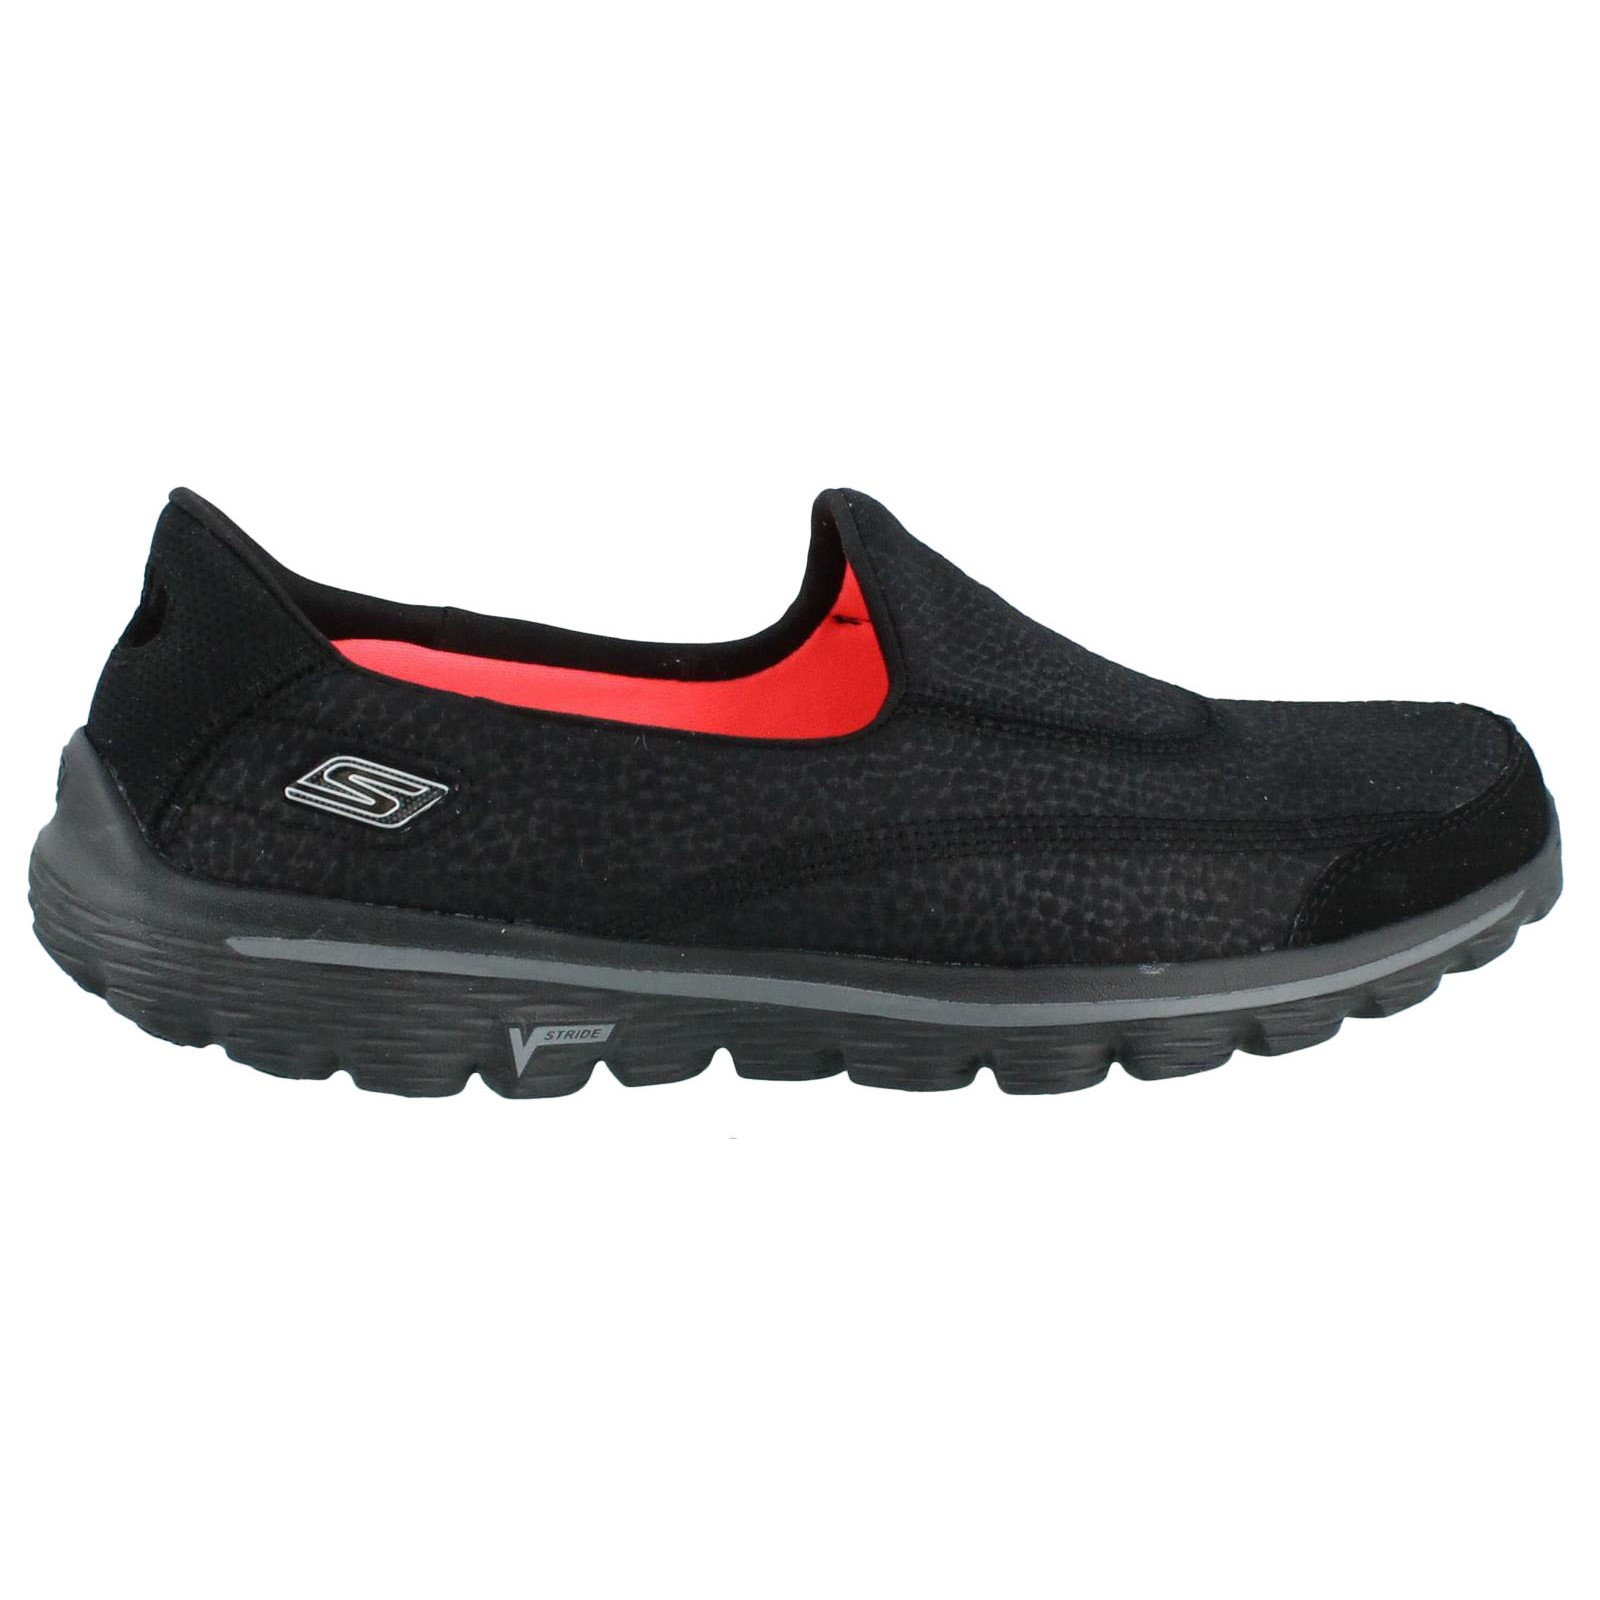 Women's Skechers, Go Walk Linear 2 Slip-on Walking Shoe